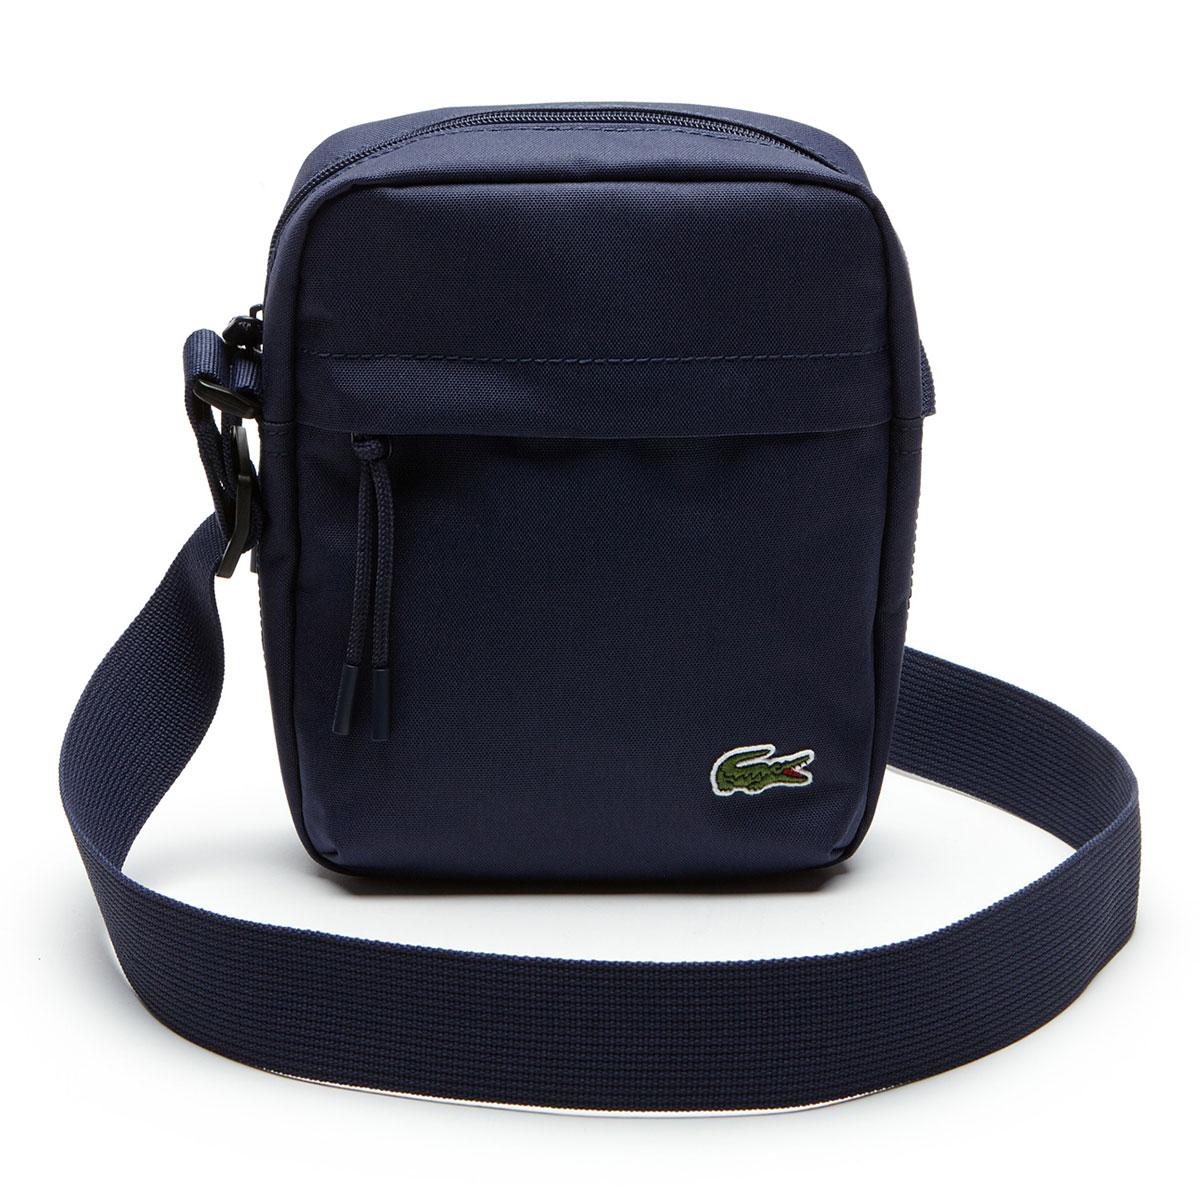 b56a147ea Details about Lacoste Mens 2019 Neocroc Canvas Vertical All Purpose Bag -  Peacoat